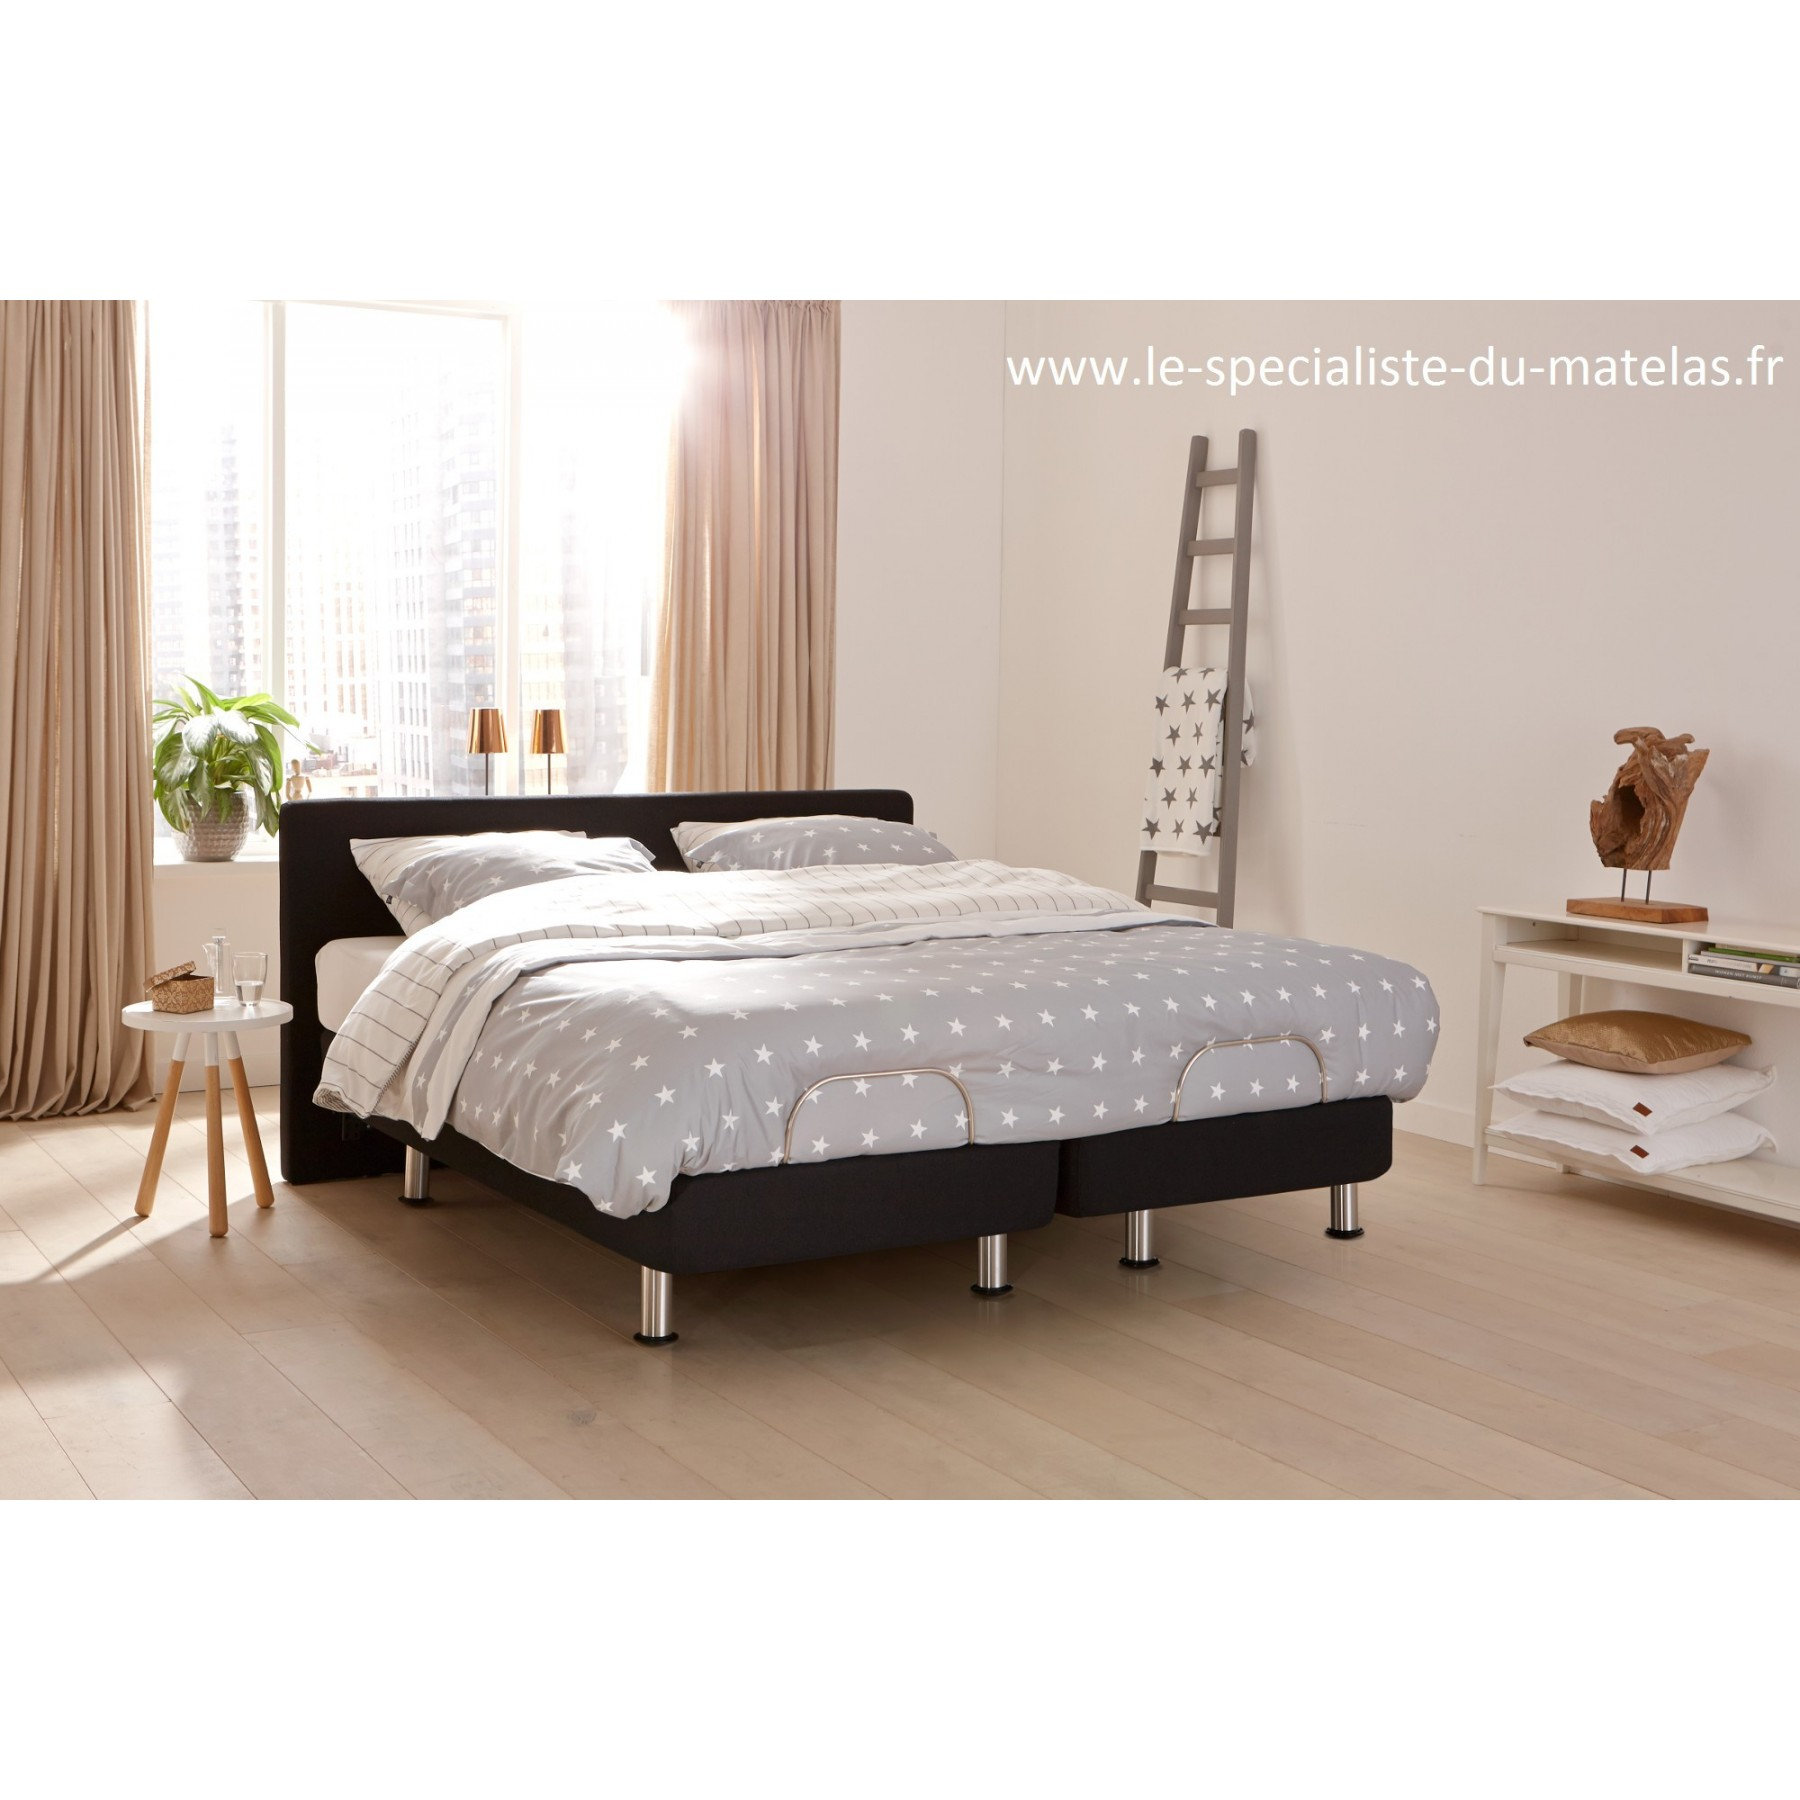 lit tempur zero g d couvrir au le sp cialiste du matelas. Black Bedroom Furniture Sets. Home Design Ideas